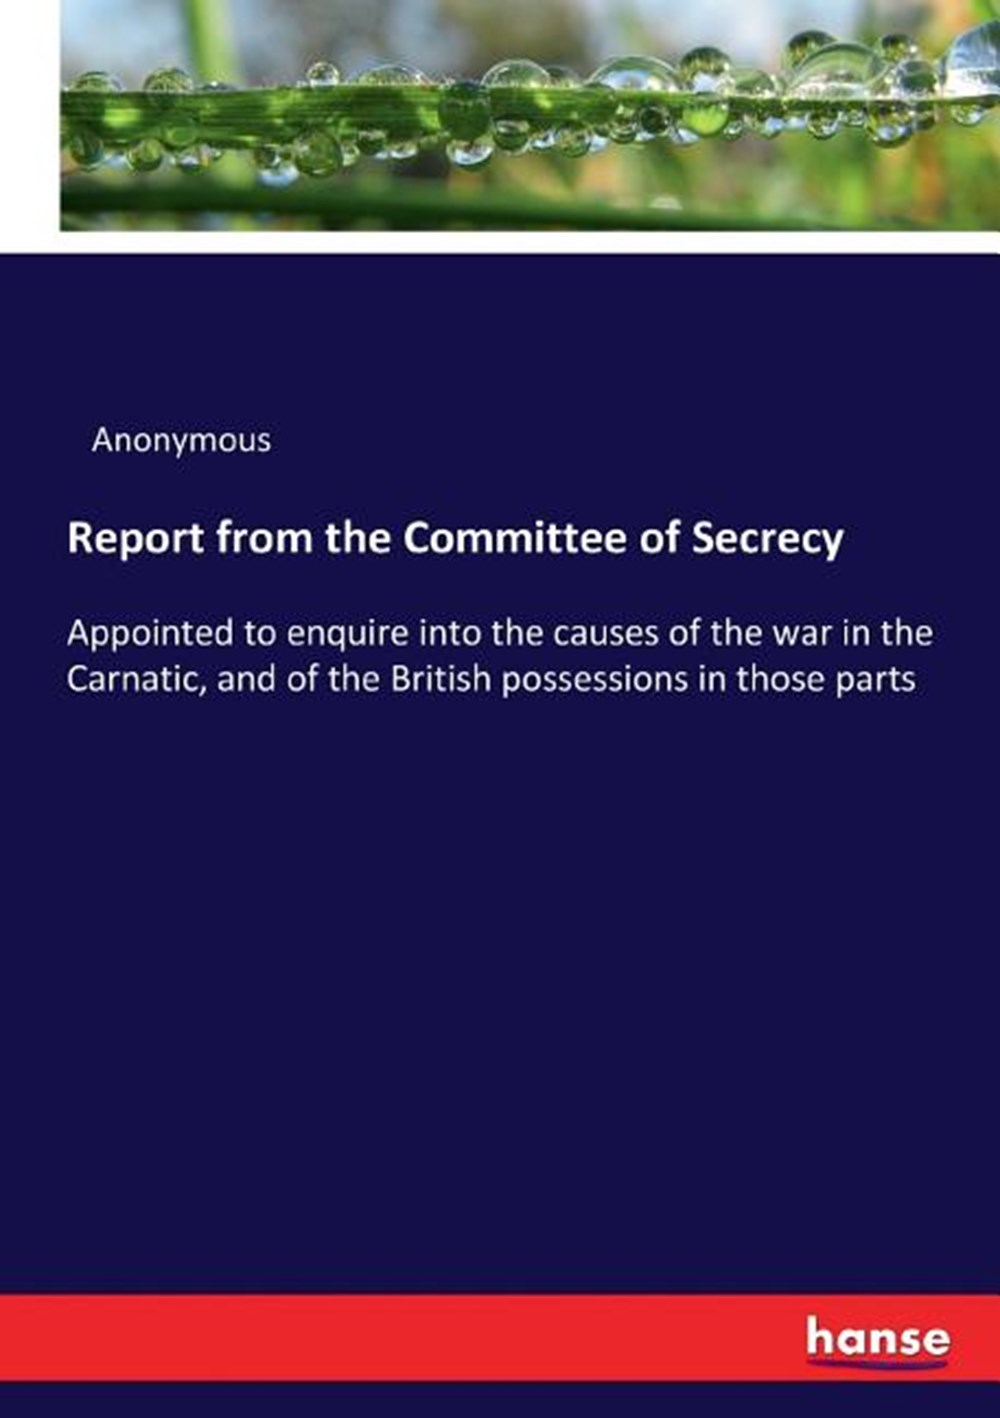 Report from the Committee of Secrecy Appointed to enquire into the causes of the war in the Carnatic